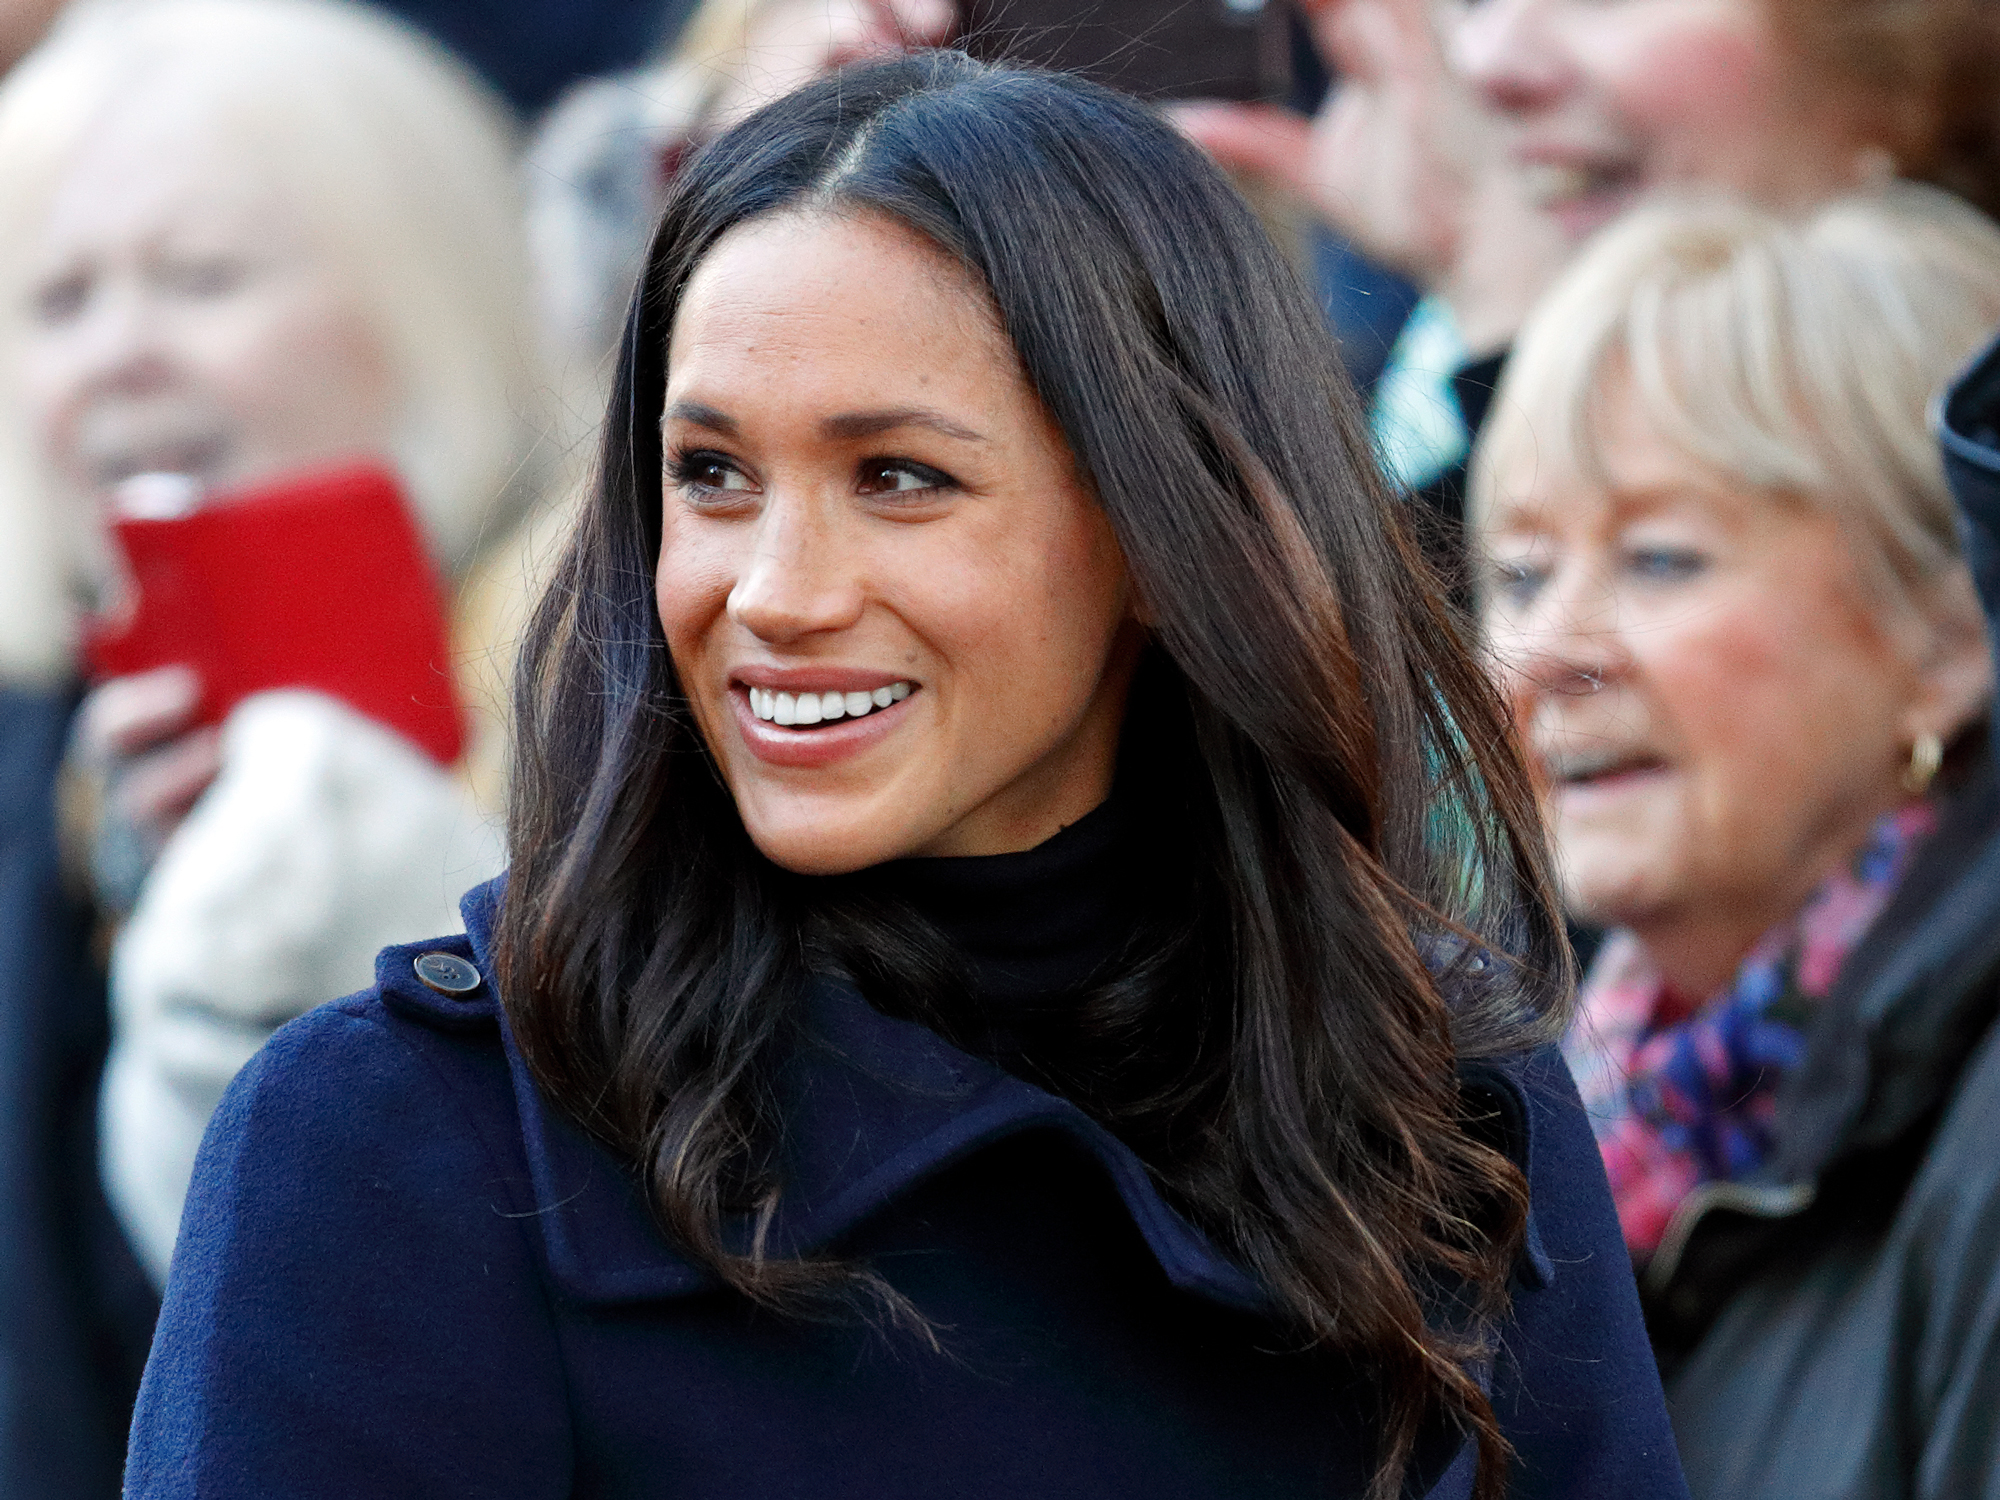 Meghan Markle Will Wear Two Wedding Dresses This Year